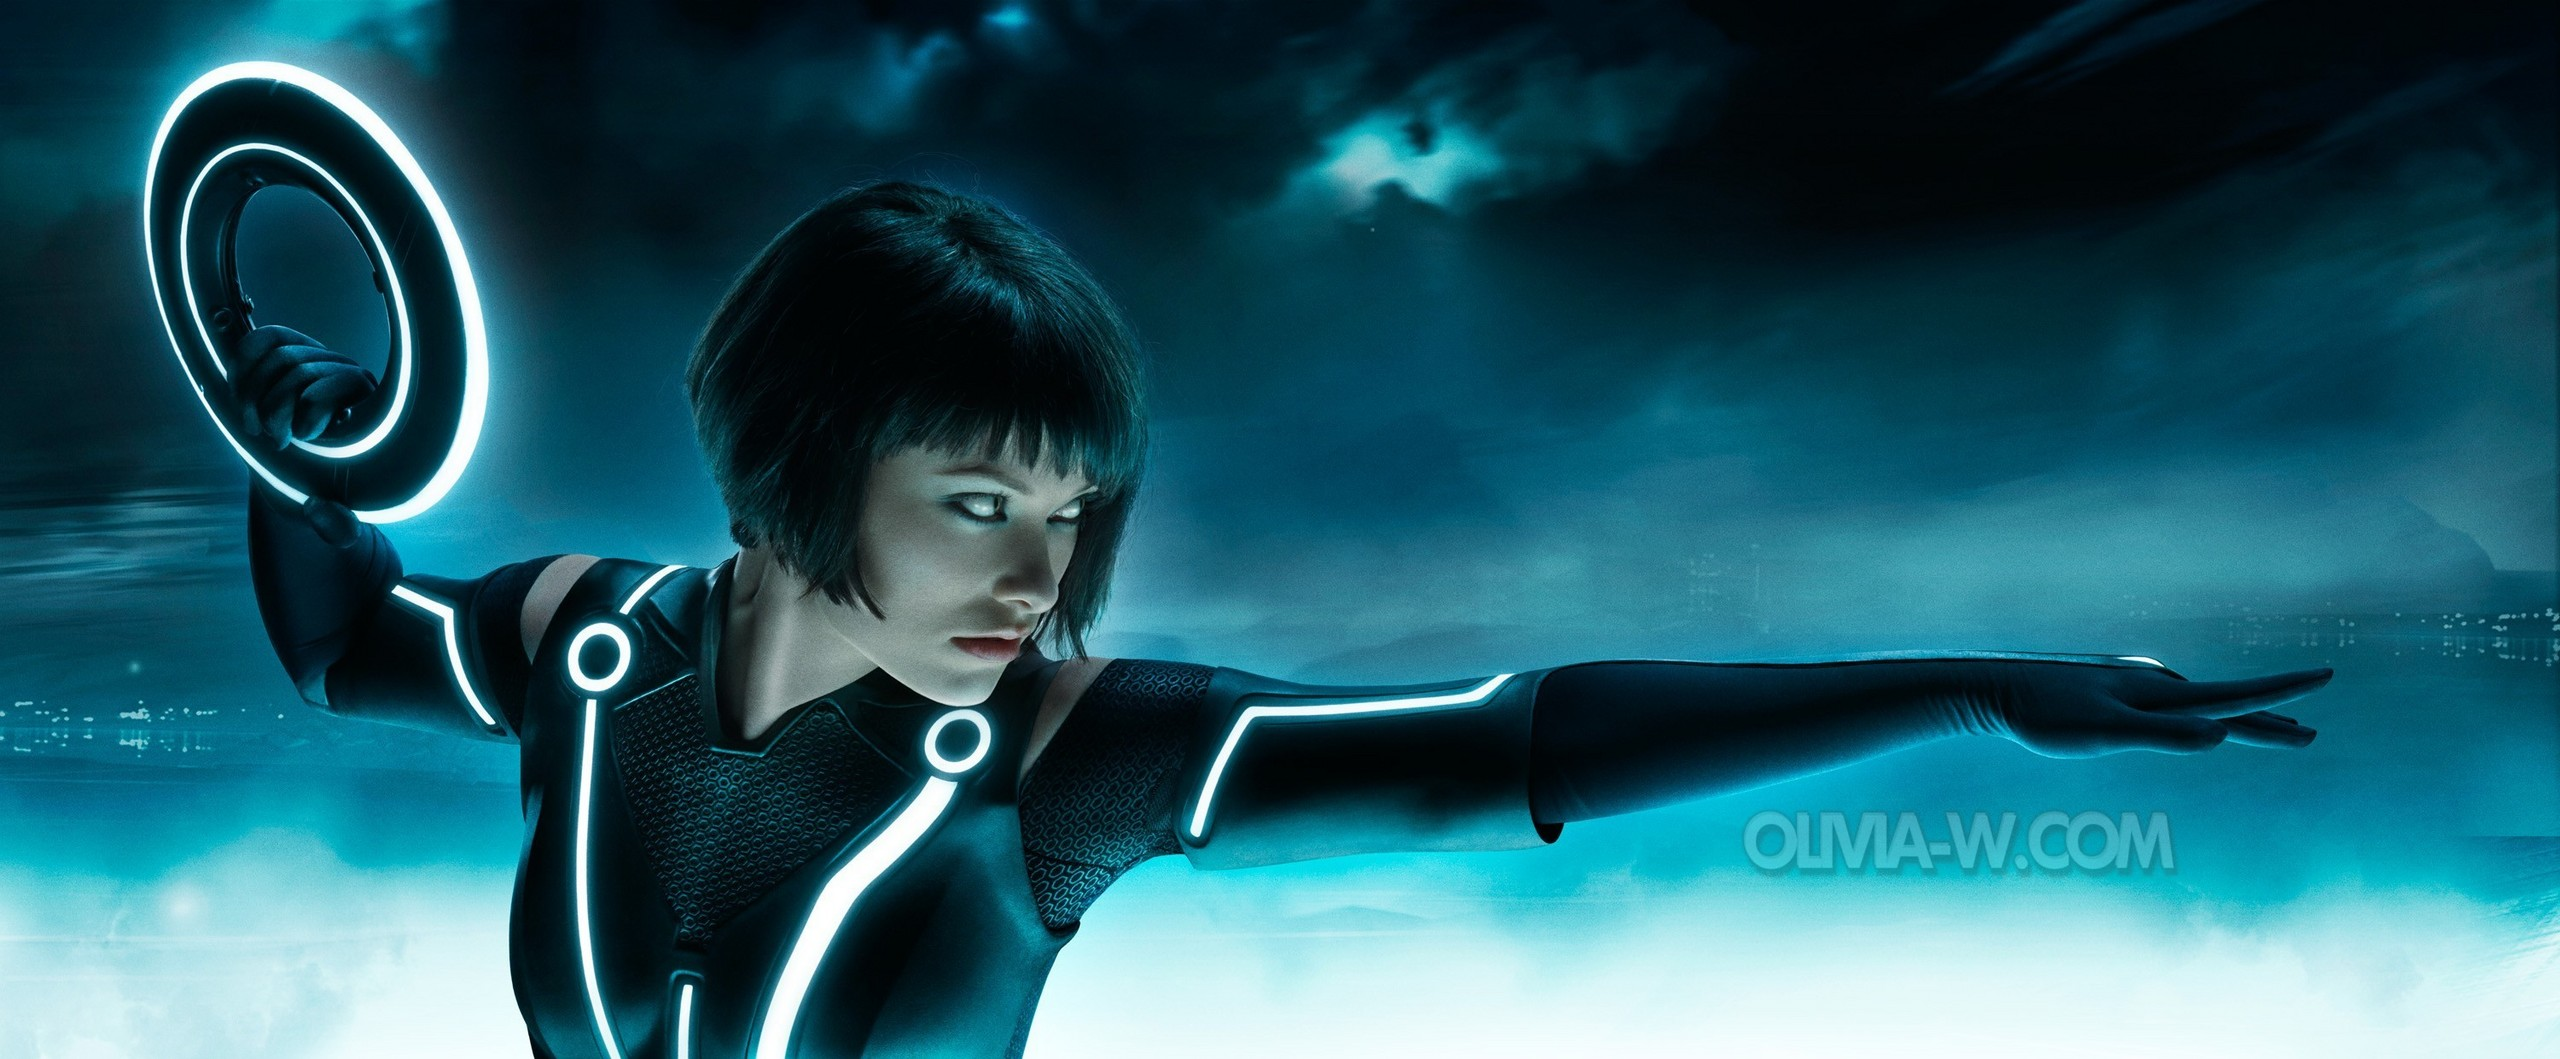 olivia wilde tron wallpaper